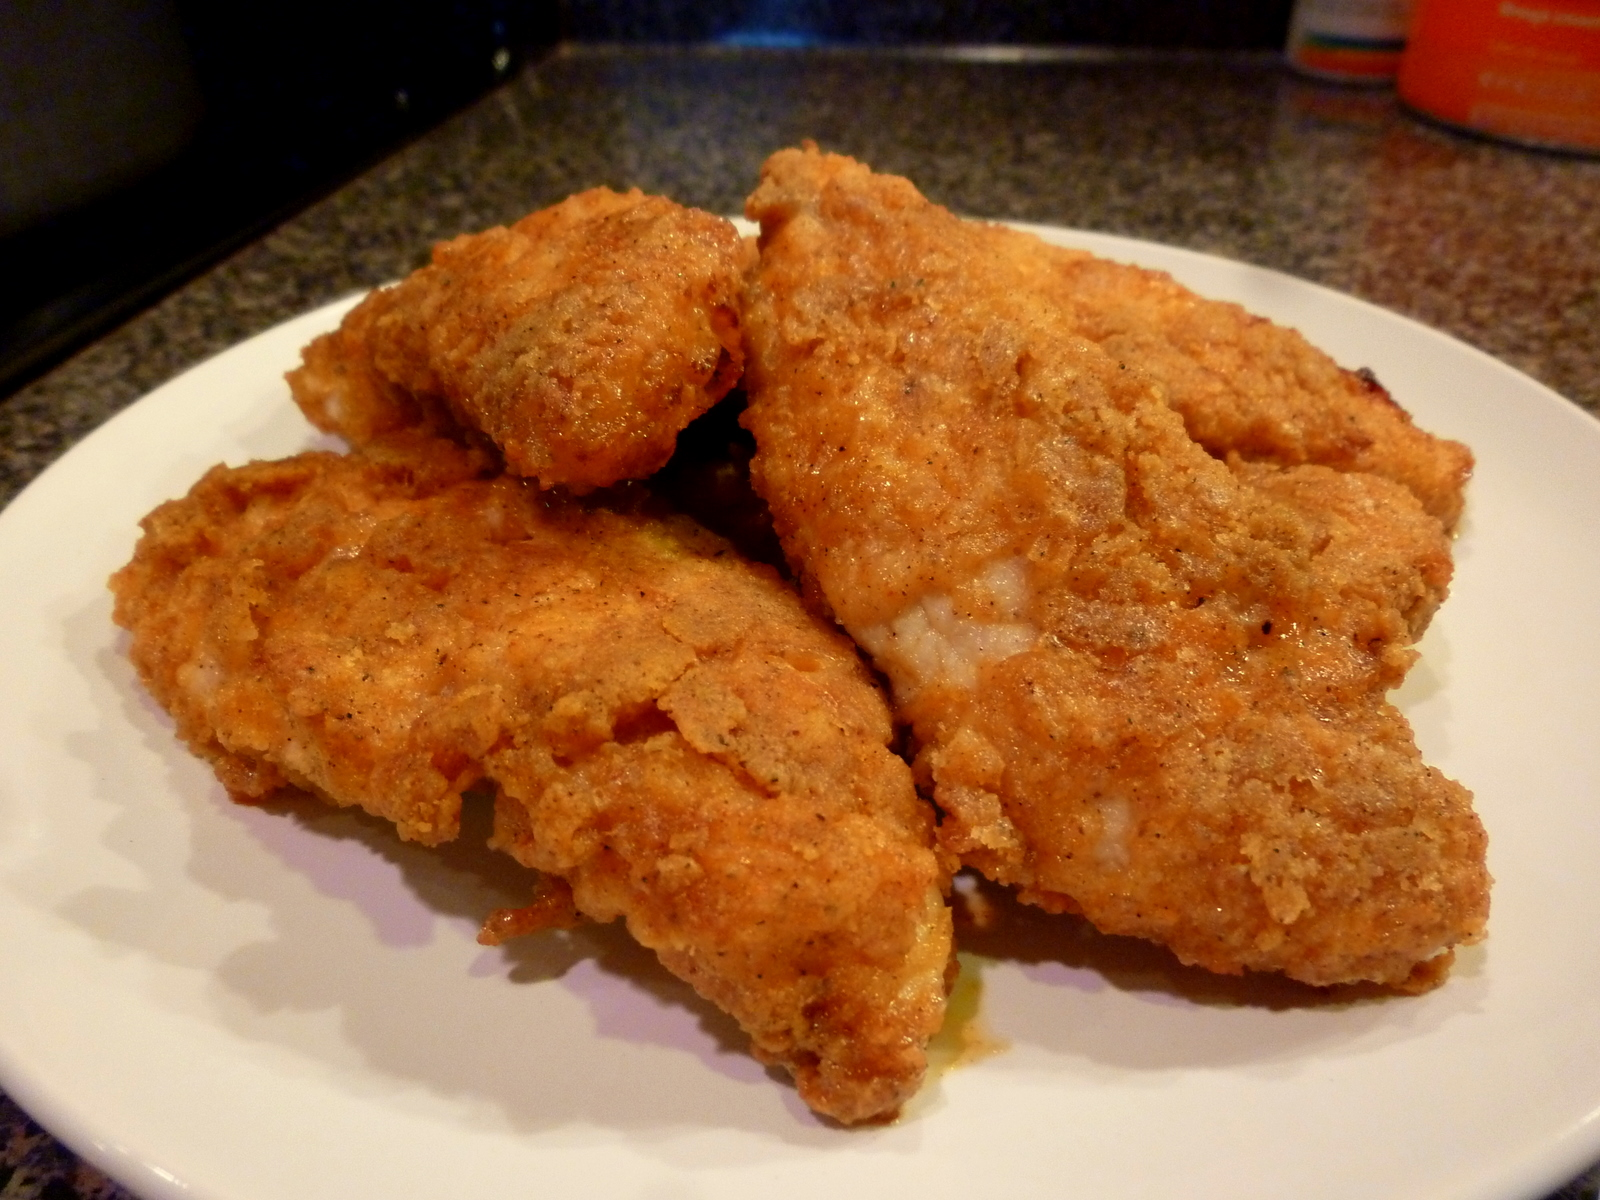 Fried chicken breast recipes uk